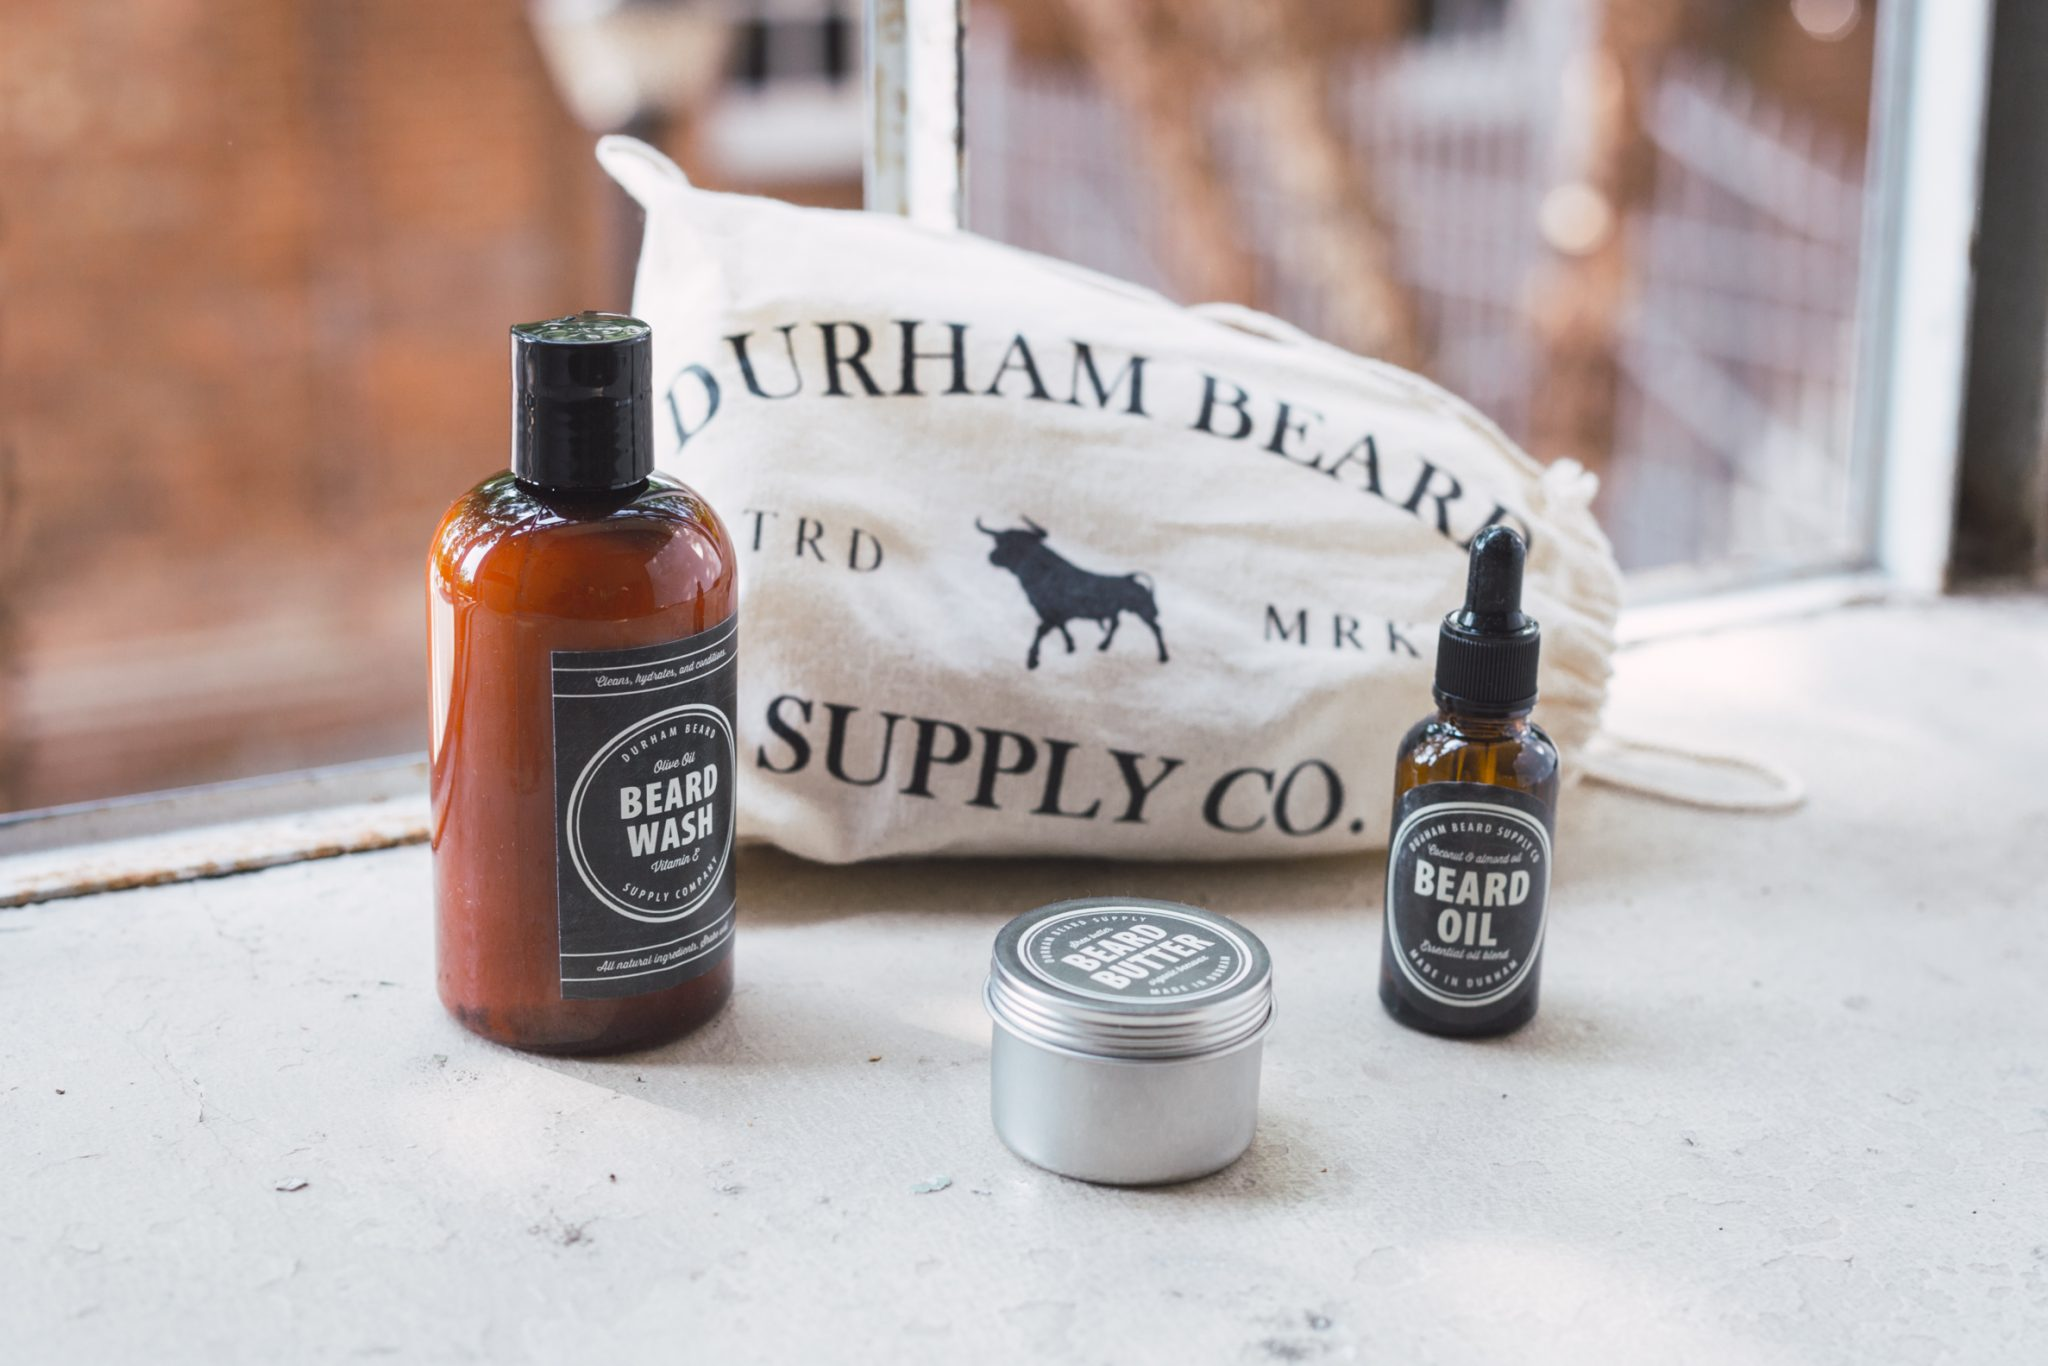 Durham Beard Supply Company